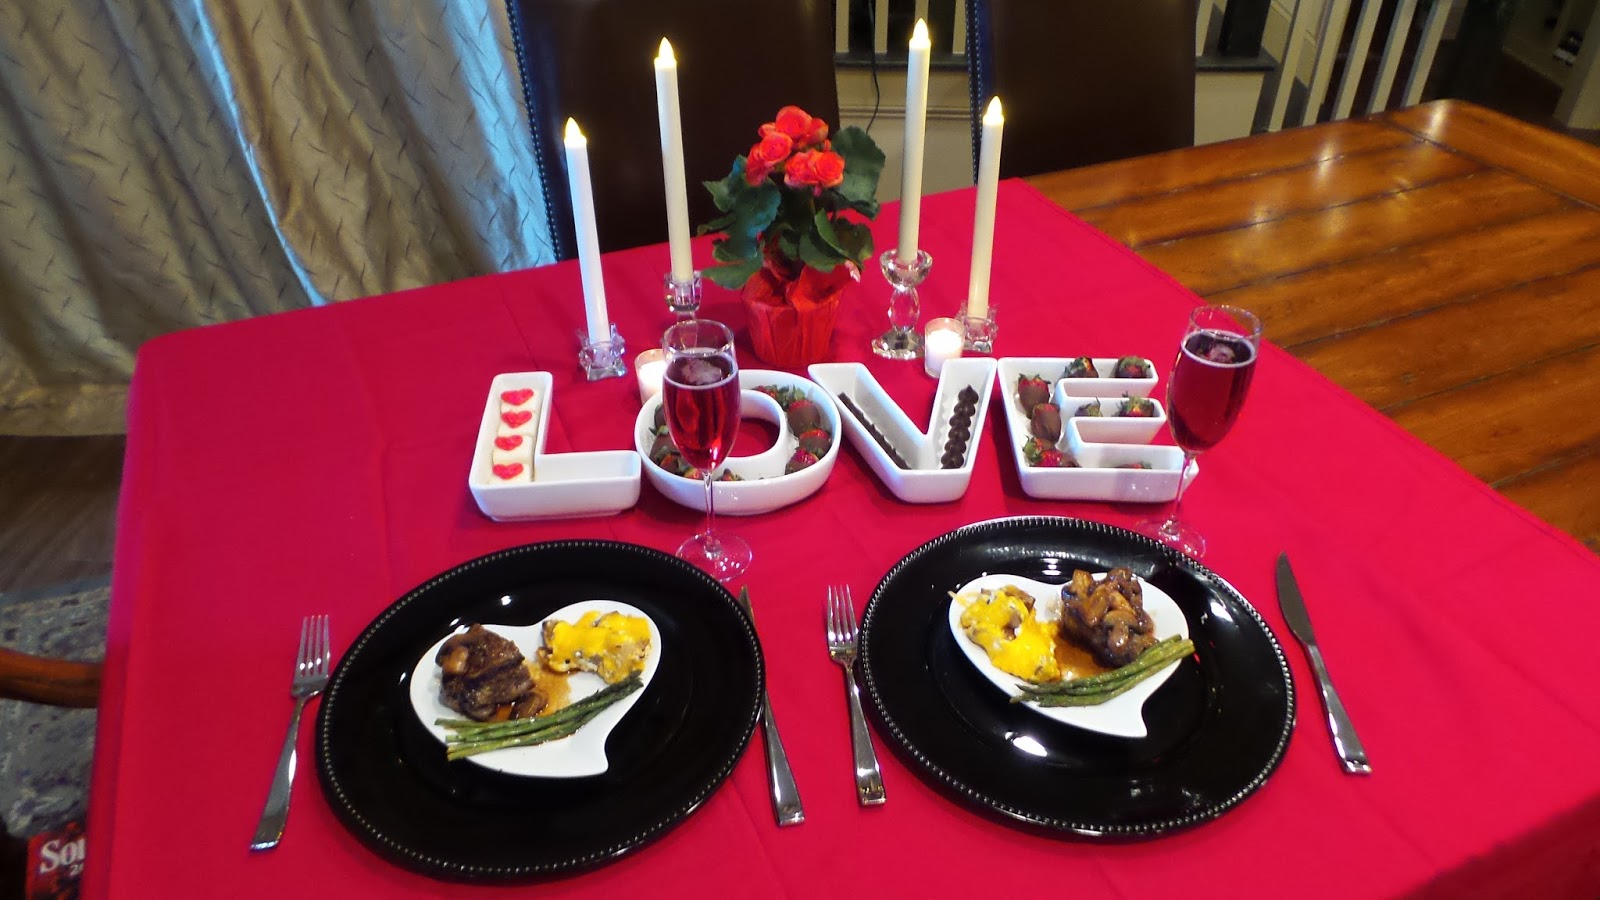 valentines day is right around the corner ive always preferred to cook a nice meal for my hubby rather than go out and fight the crowds i thought i - Valentine Day Meals To Cook At Home